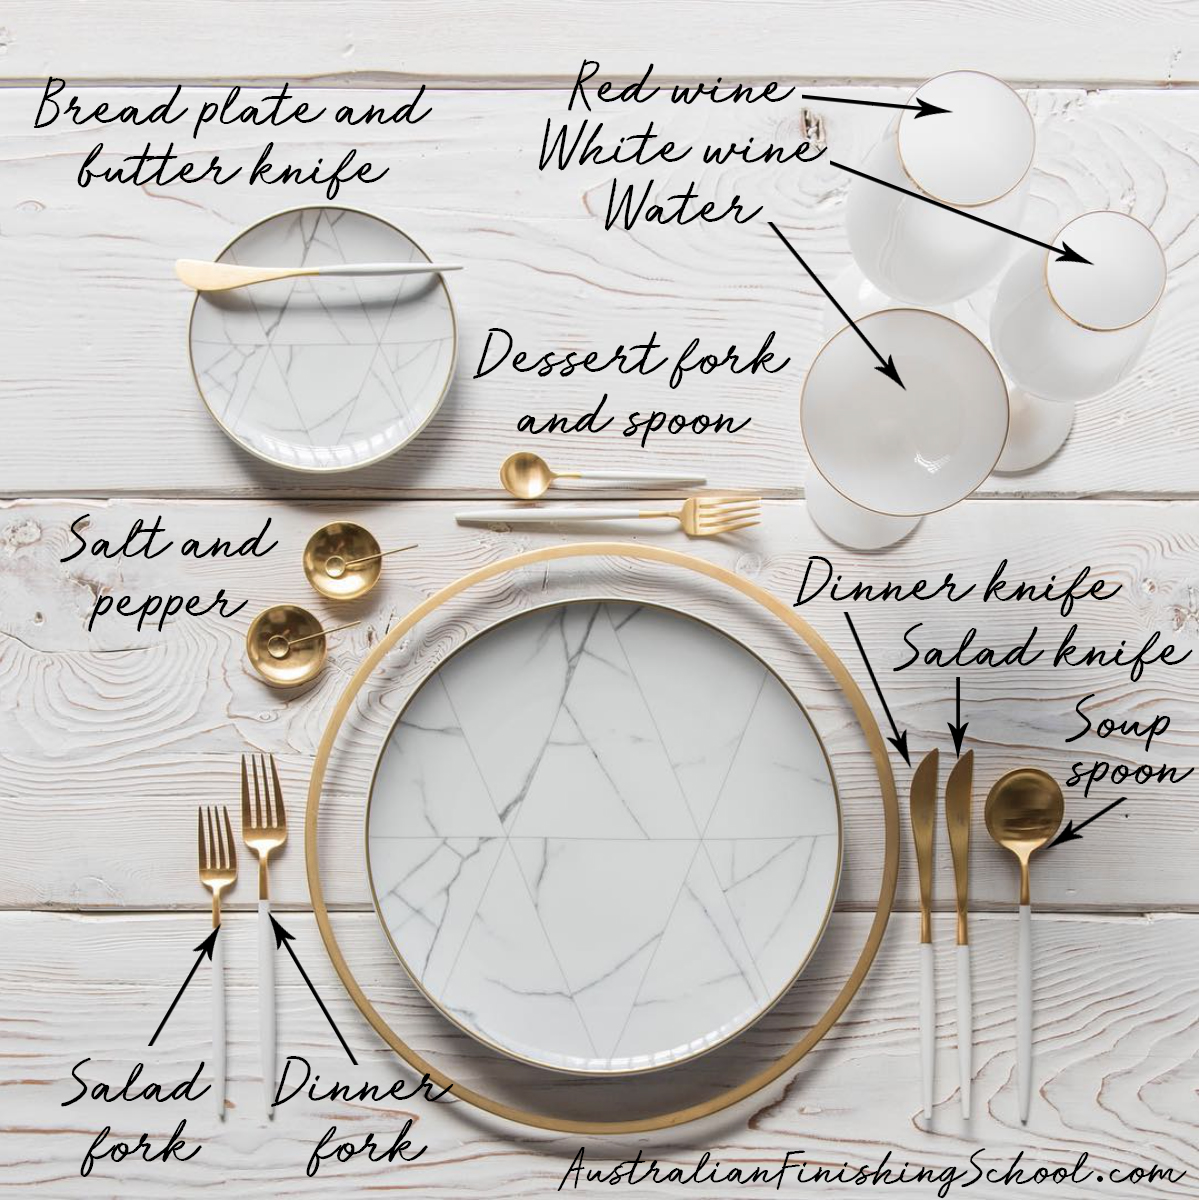 Basic Dining Etiquette & Table Manners